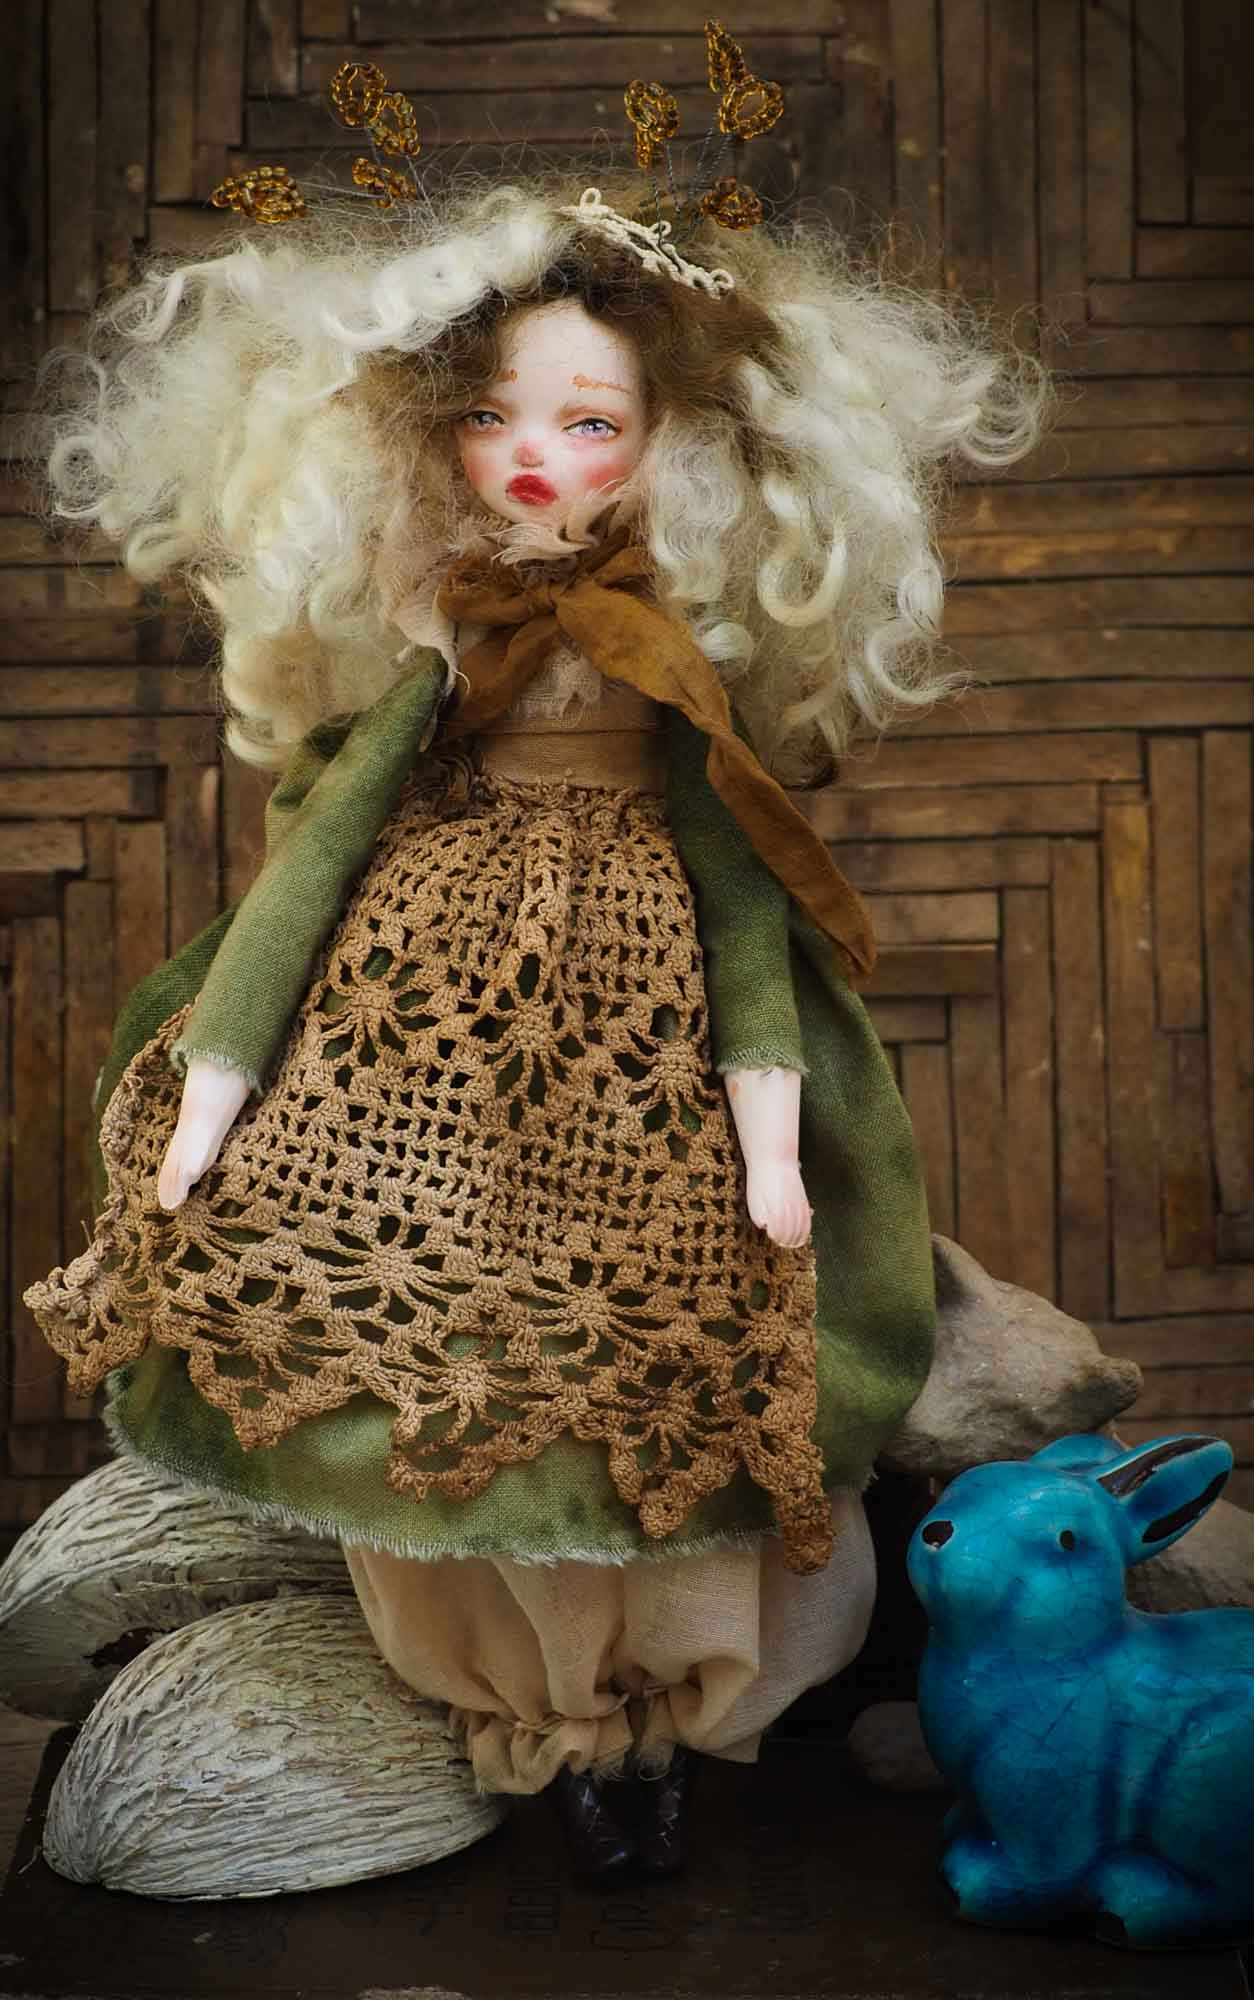 An original Danita handmade art doll, inspired by the sounds and smells of the Autumn forest, dry leaves and the colorful scenery of Mother Nature.  Her name is TERRA, goddess of the earth and home to all of us. She is dressed in a beautiful hand made green dress and a brown lace apron that represent the life giving power of earth and plants.